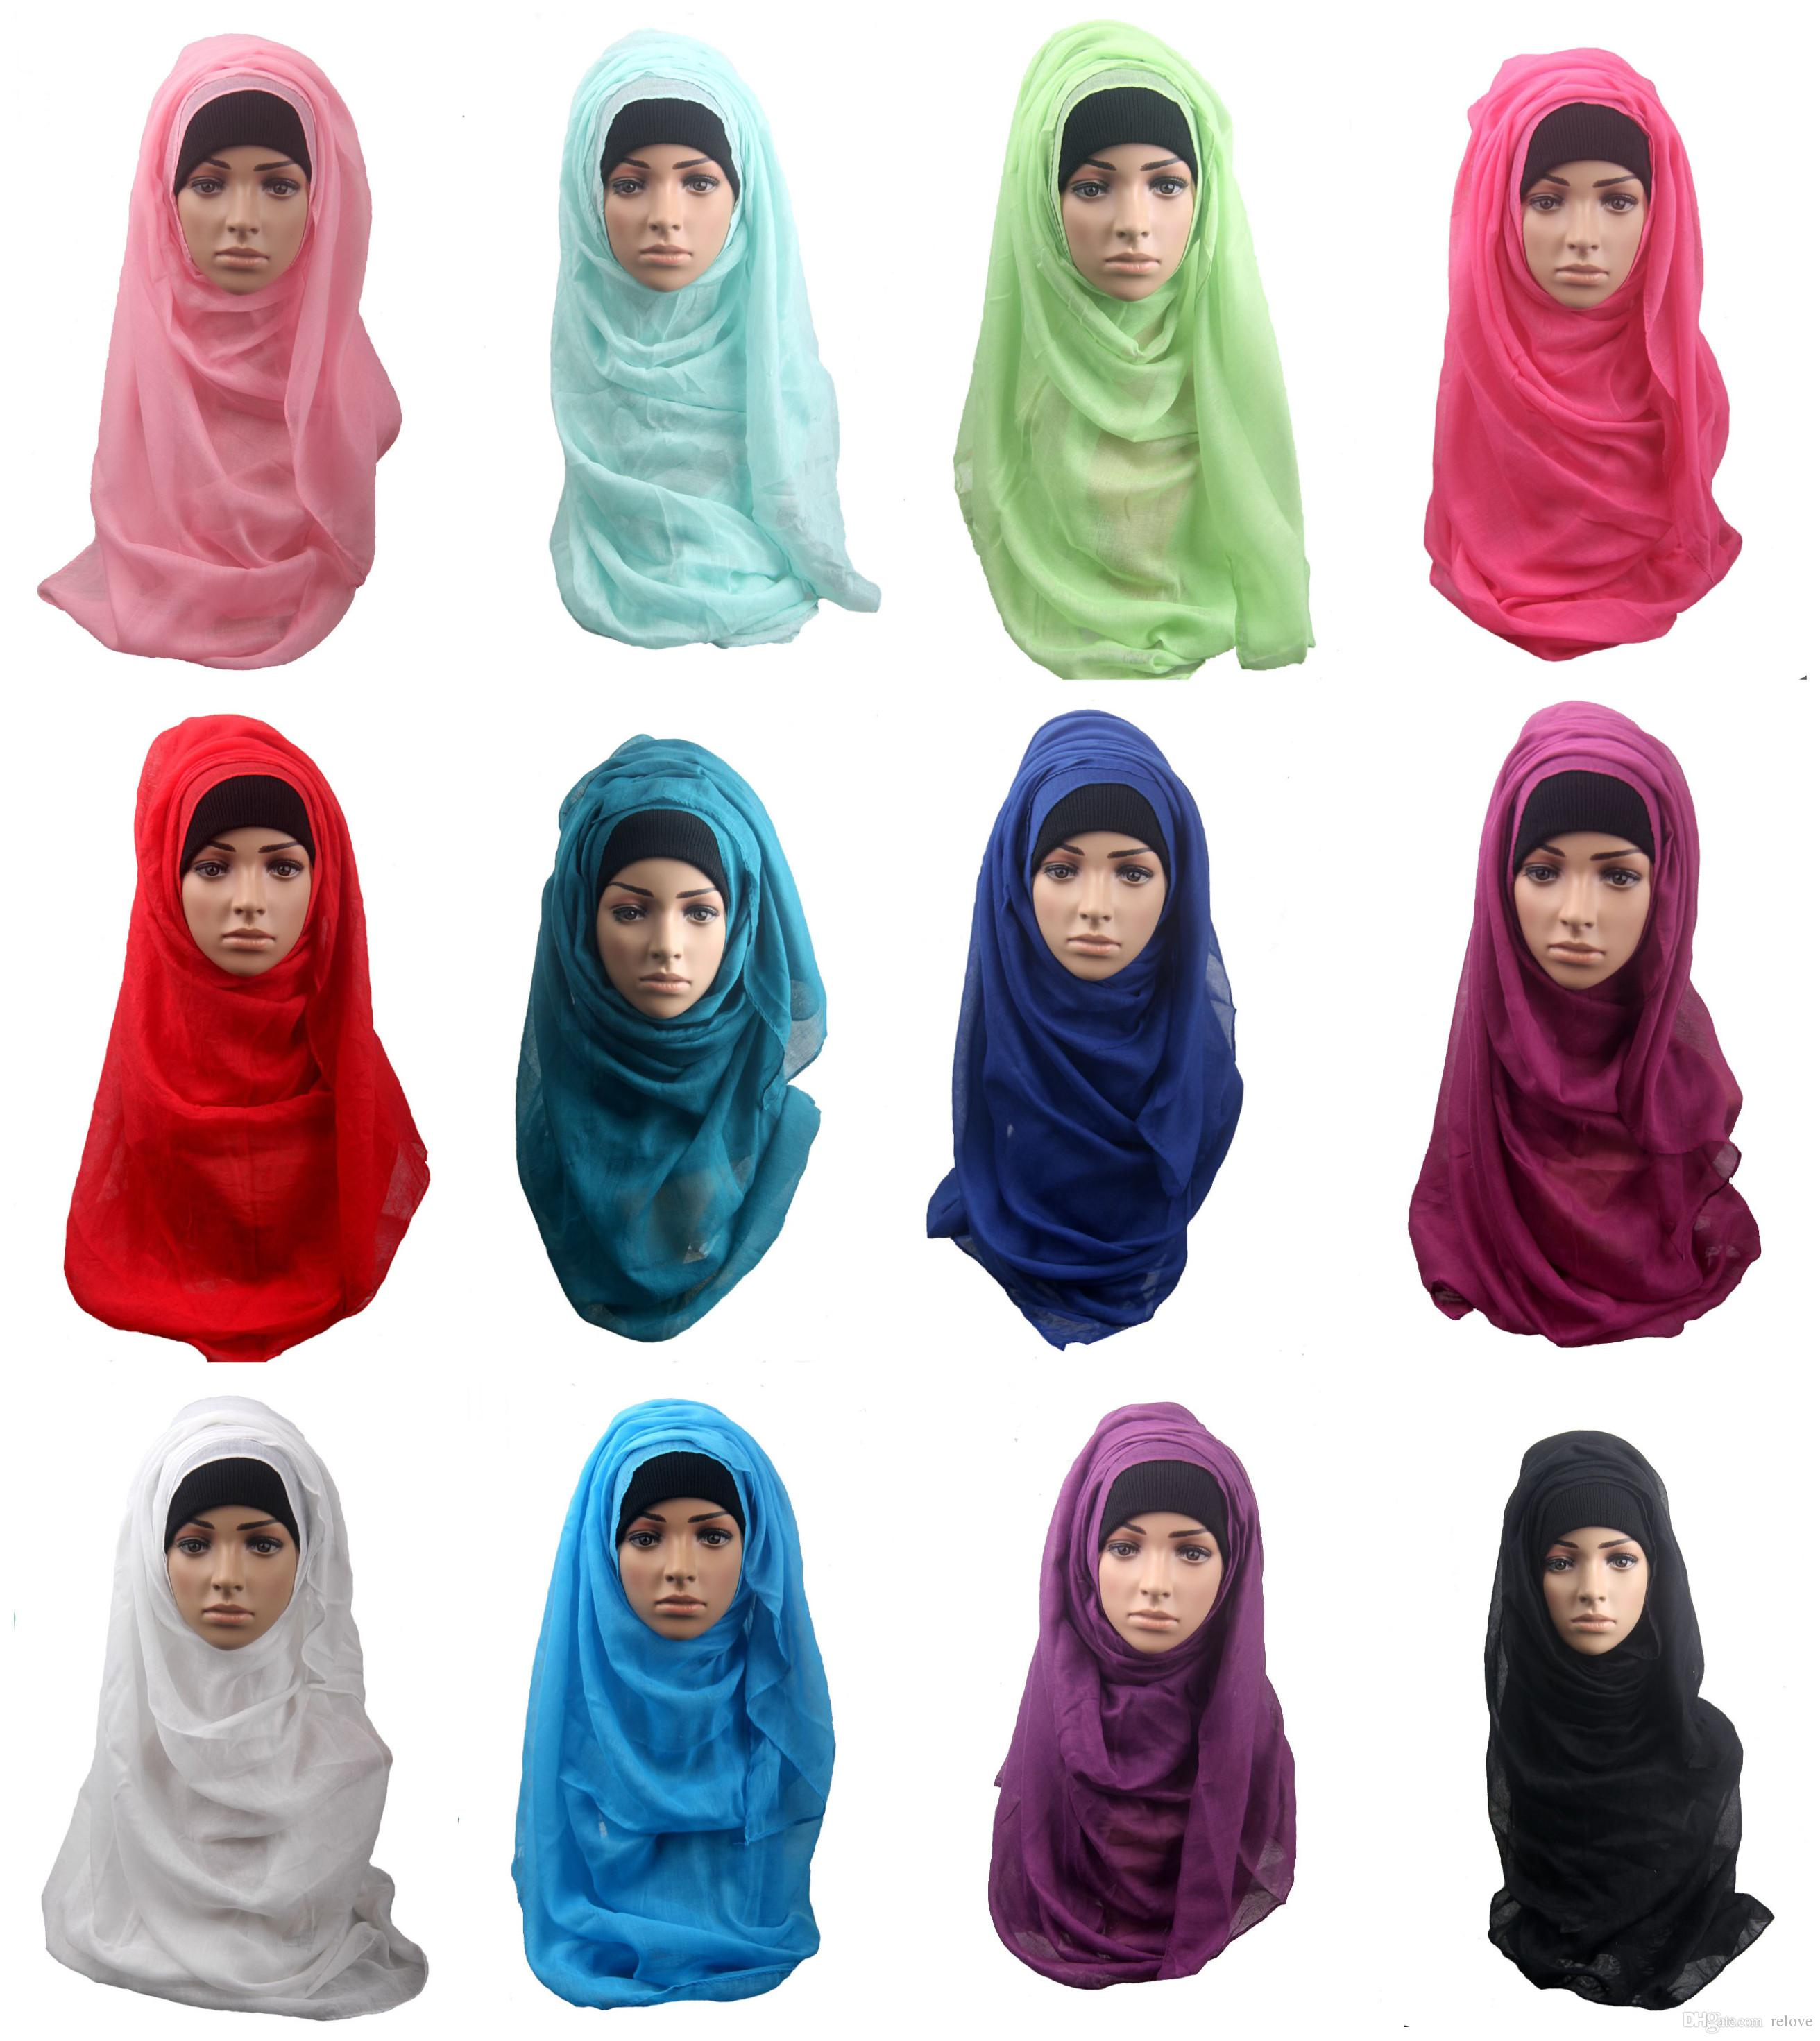 Pretty Baby Shawls And Scarves Solid Plain Hijab Scarf Women Wraps Foulard  Viscosecotton Maxi Shawls Soft Long Islamic Muslim Scarves Hijabs Clothes  ... 186b54d436c